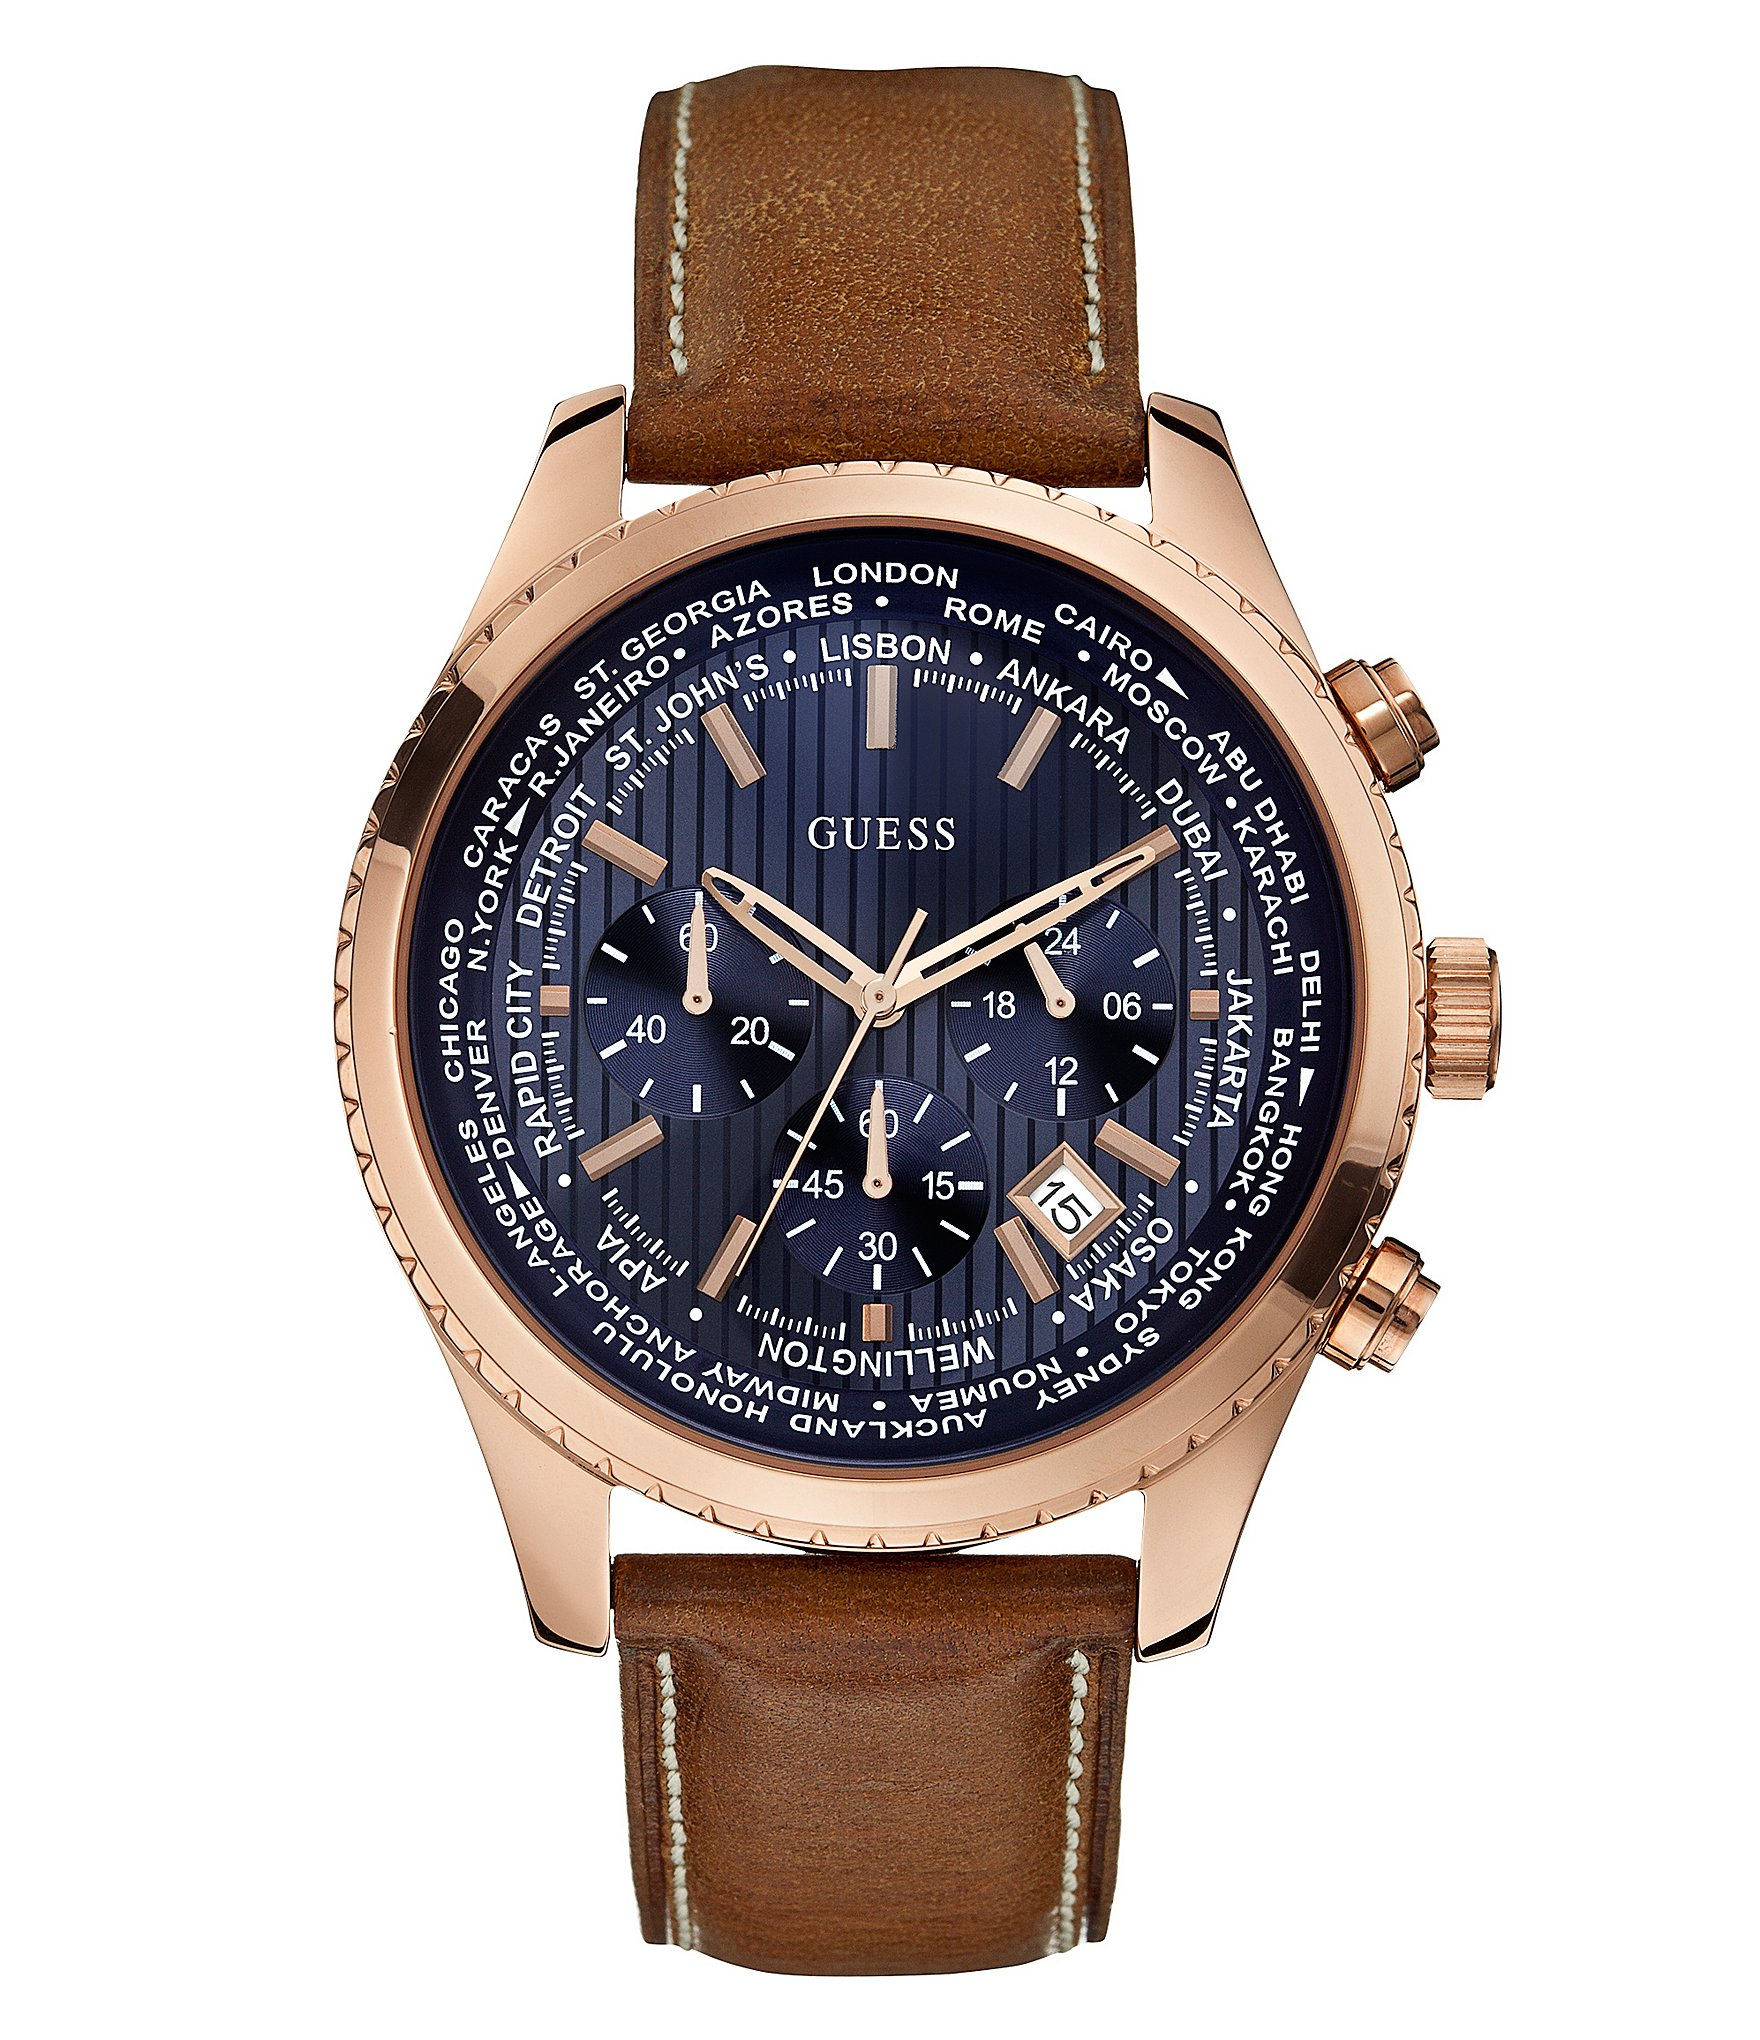 Shop Dillard's selection of men's analog watches available in your favorite brands including Armani Exchange, Diesel, and Hugo Boss.